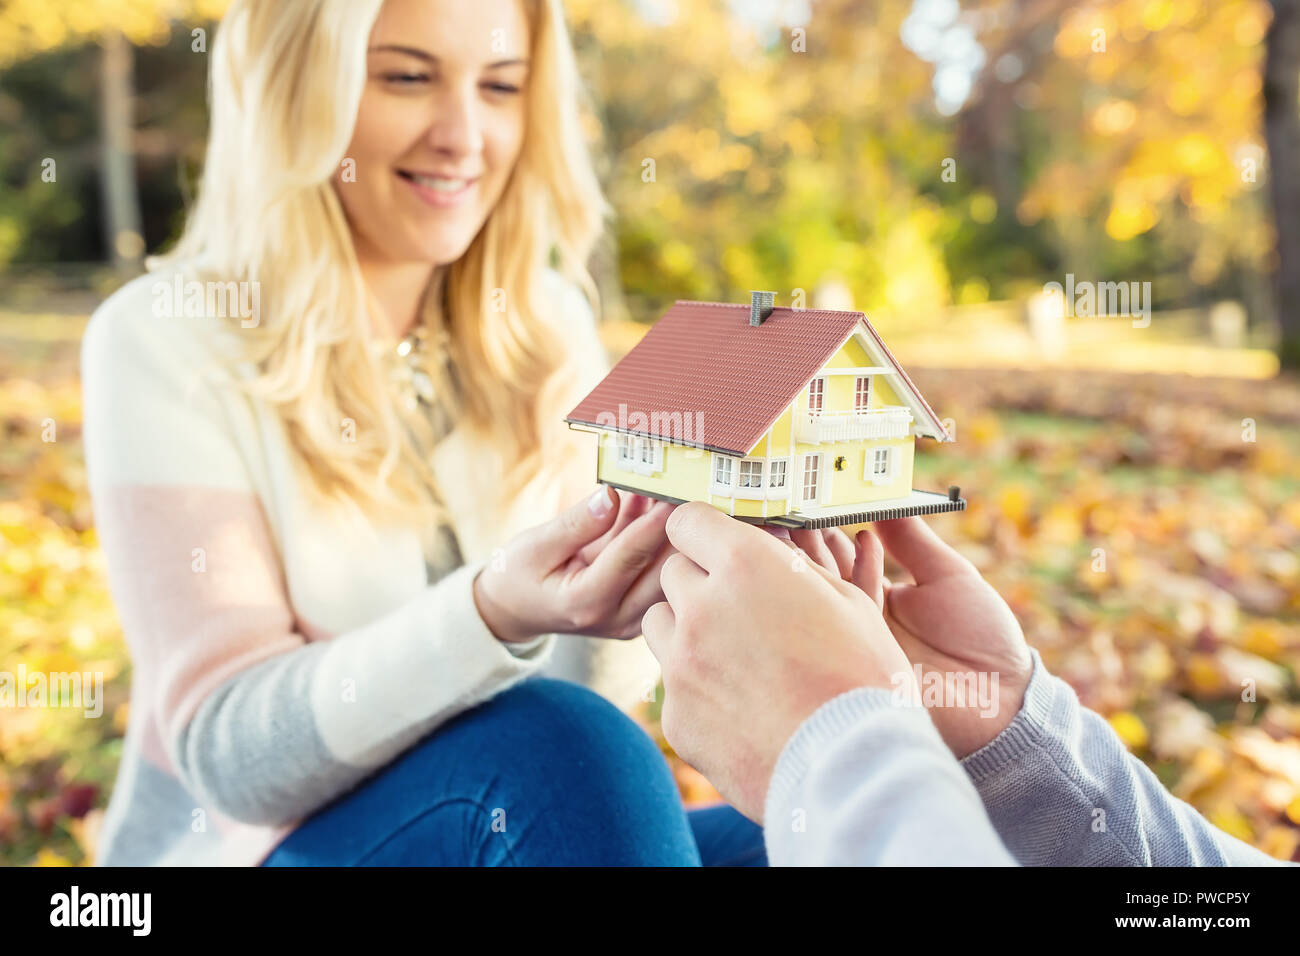 Young loving couple holding small model house in autumn garden or park. Stock Photo